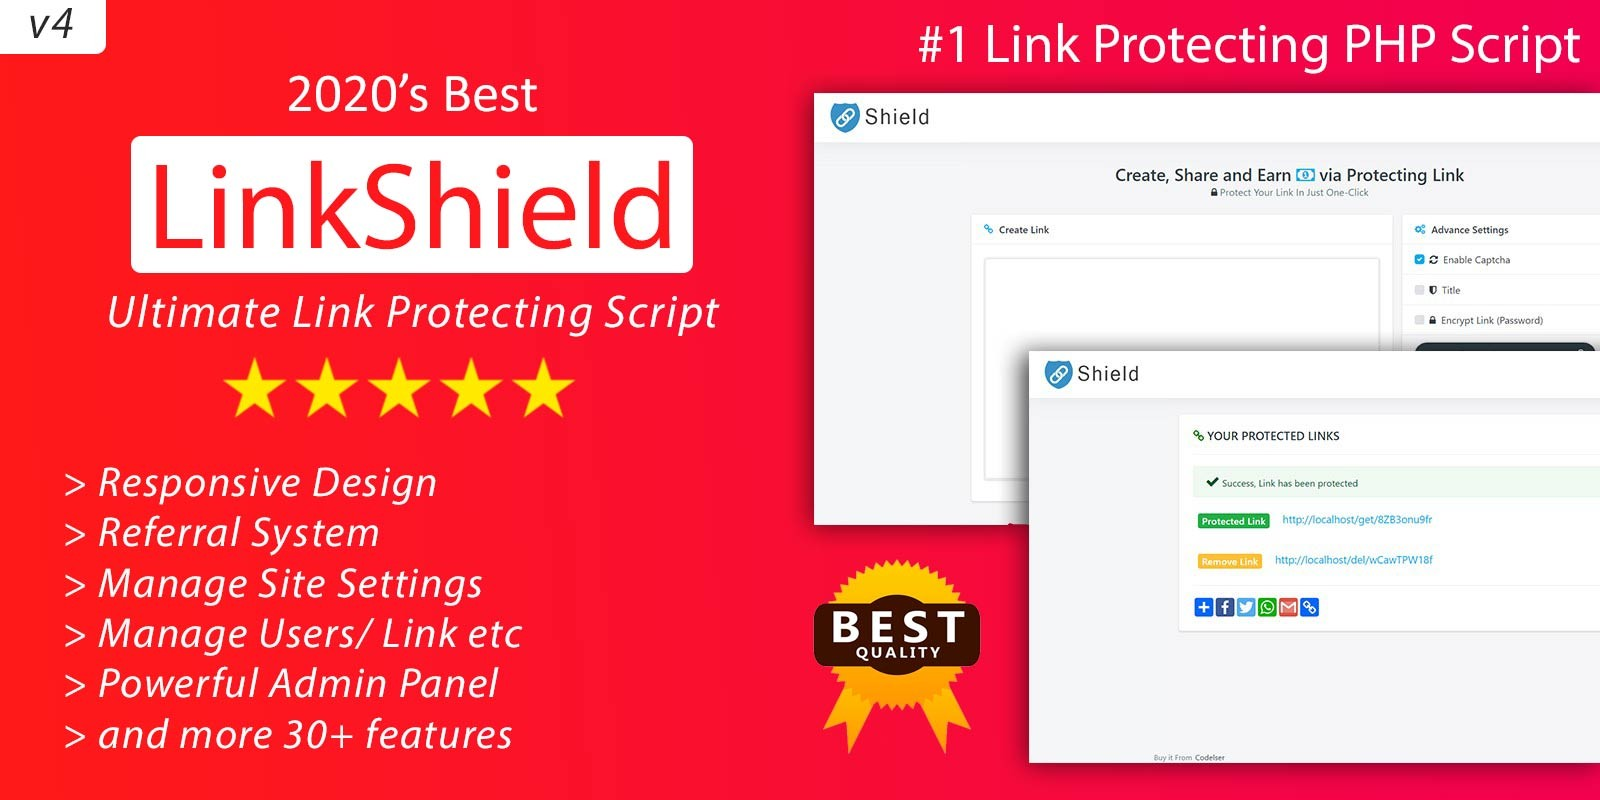 LinkShield - Link Protecting PHP Script